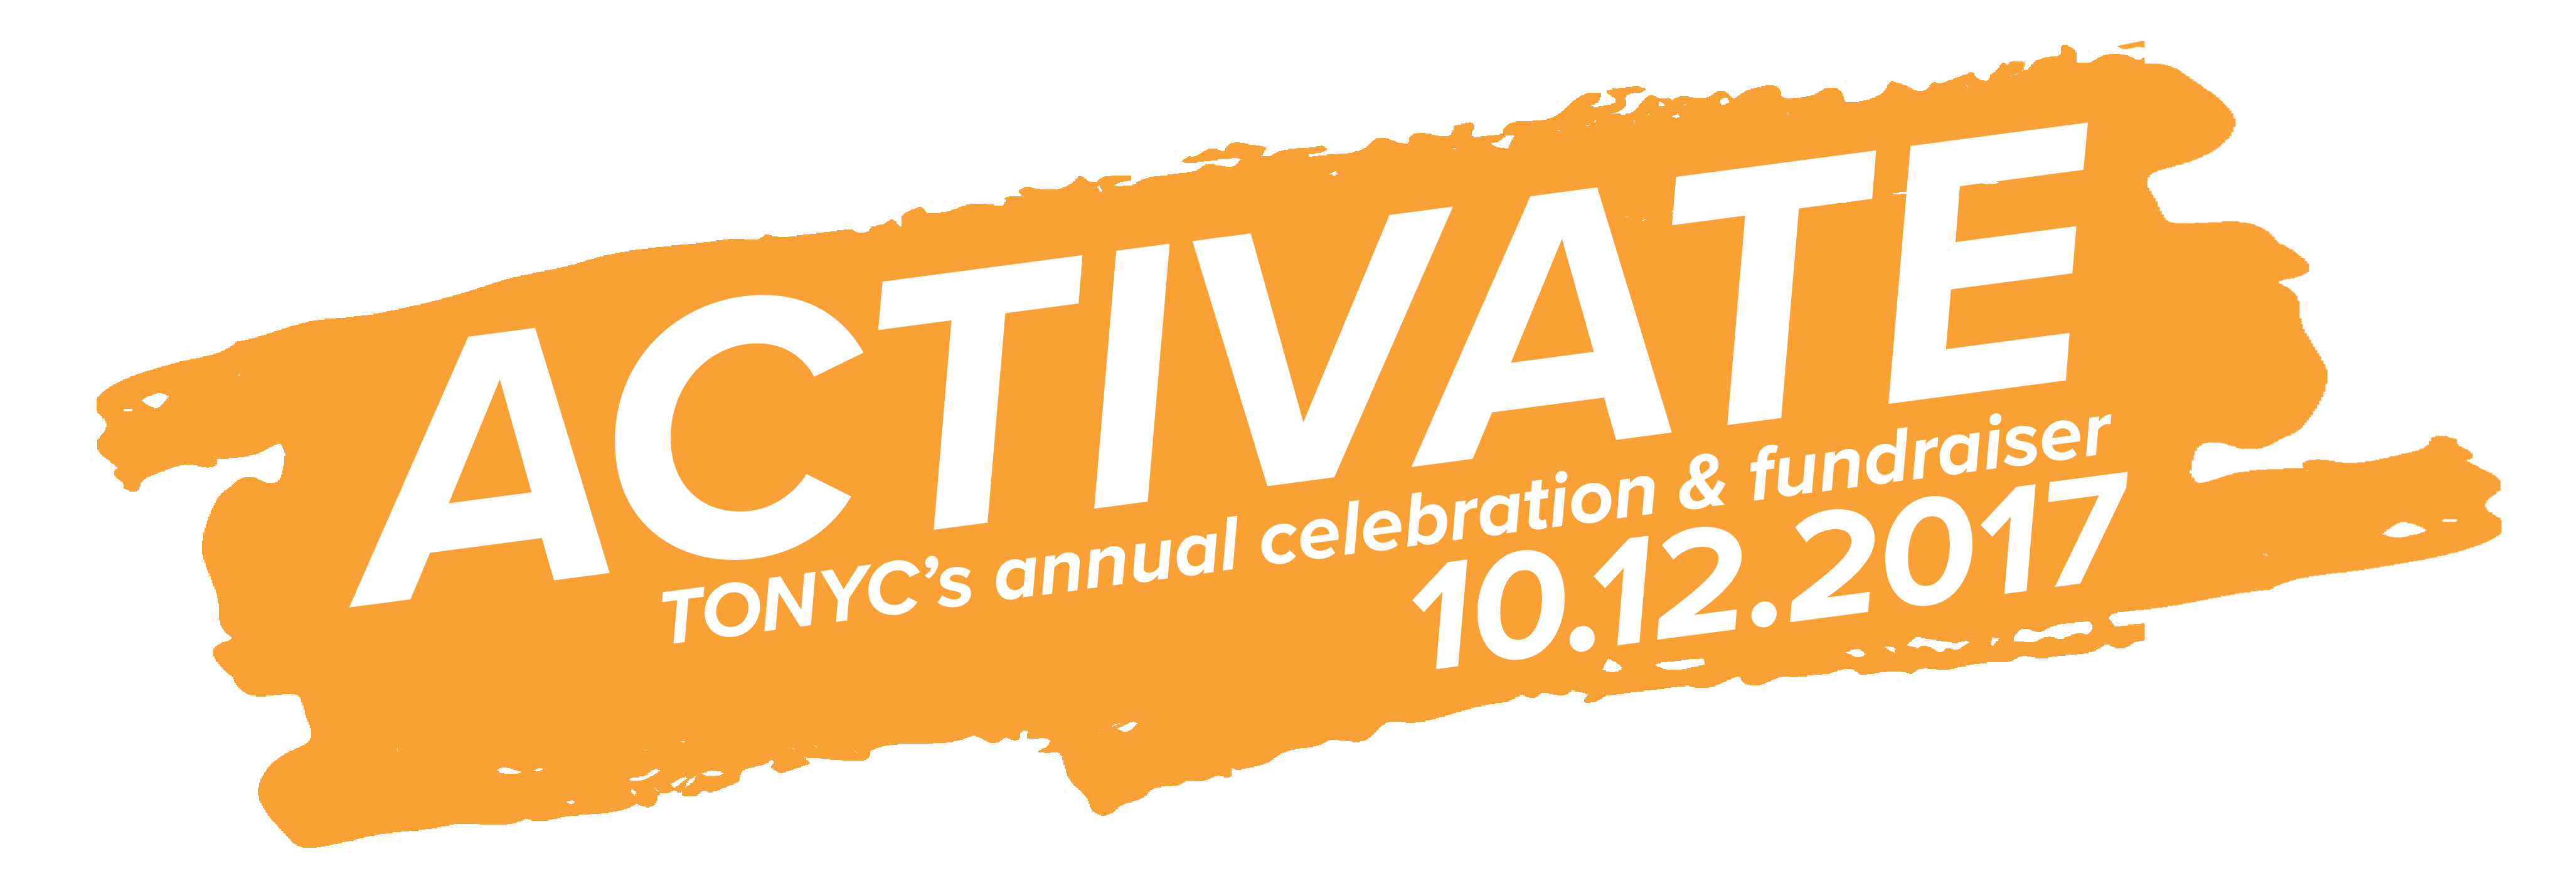 activate_2017_save_the_date_banner_for_web.png